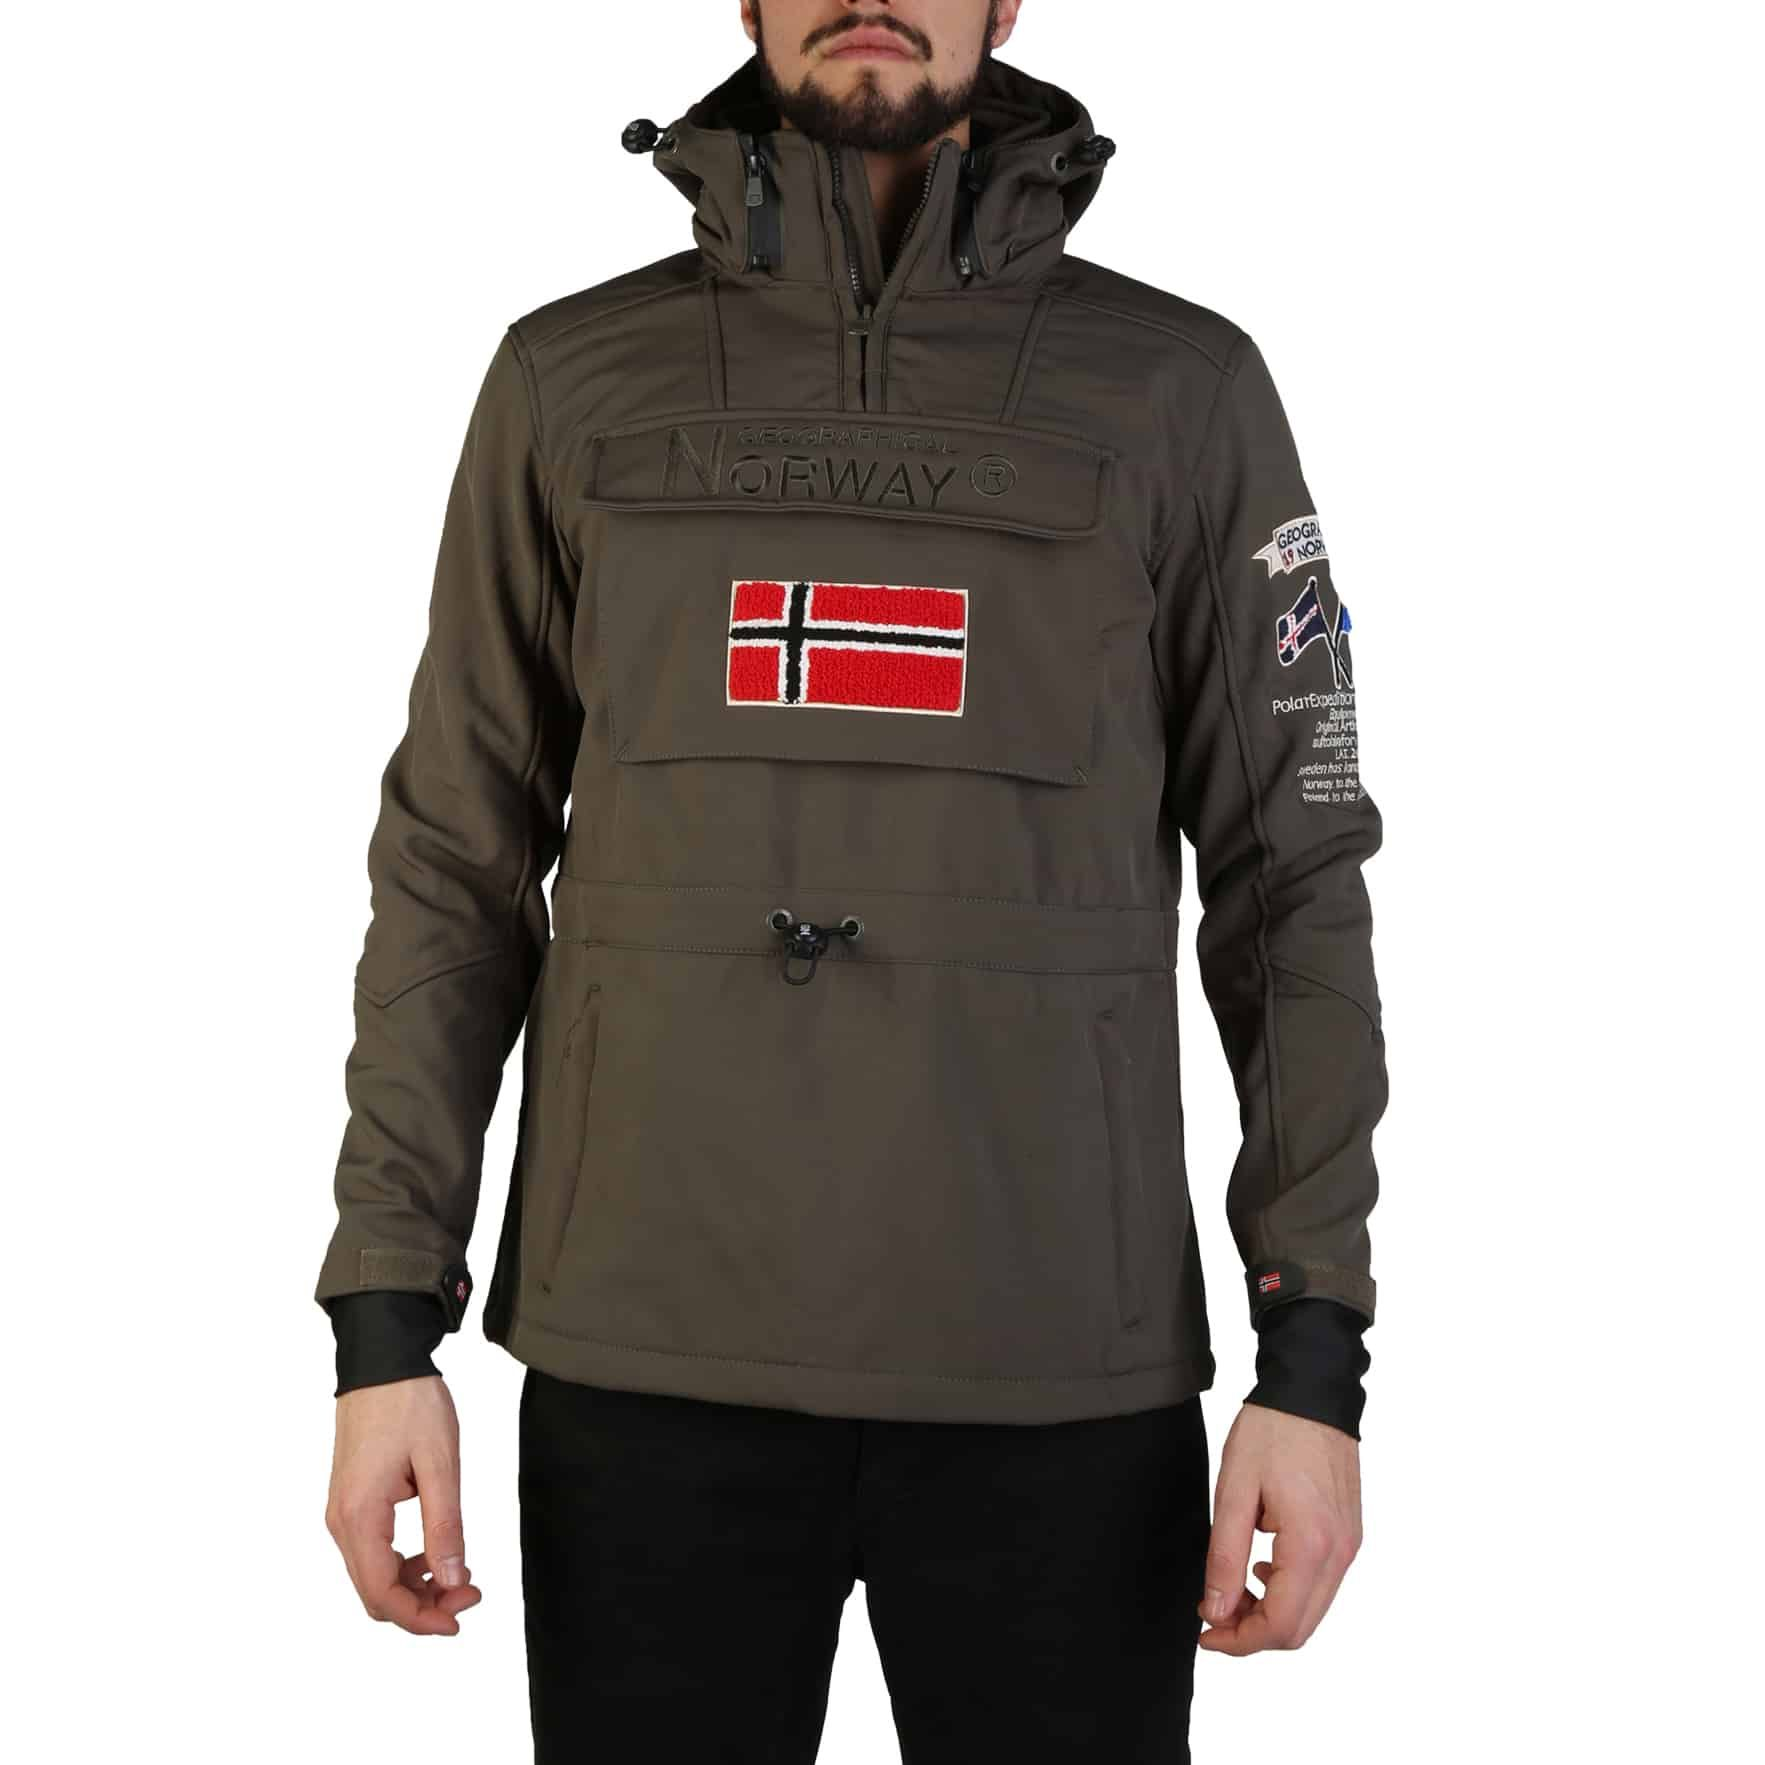 Geographical Norway – Target_man